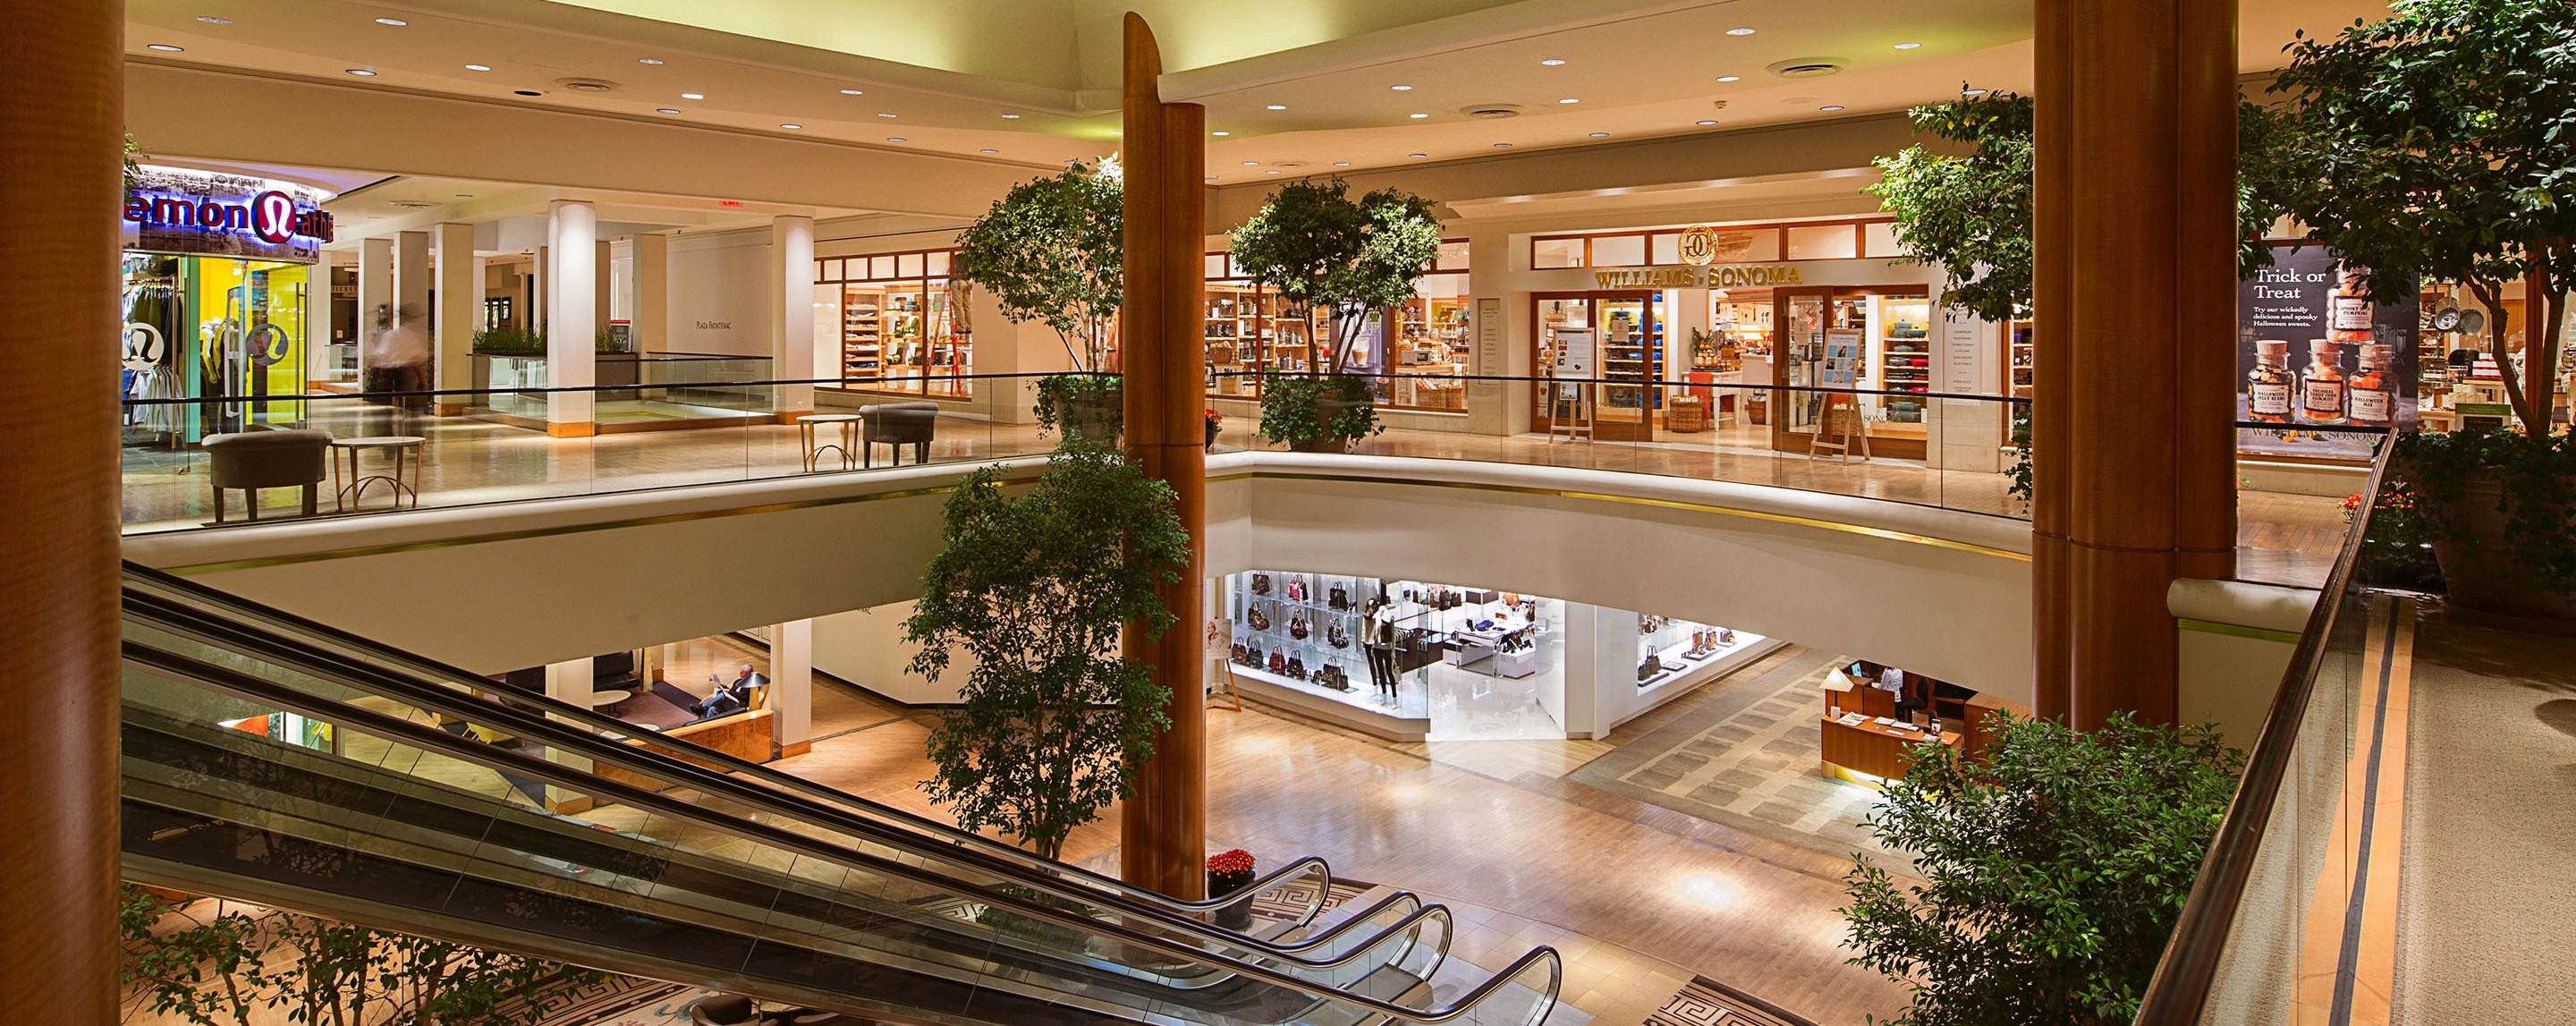 Small trees and plants decorate the second floor of a shopping center with an escalator.